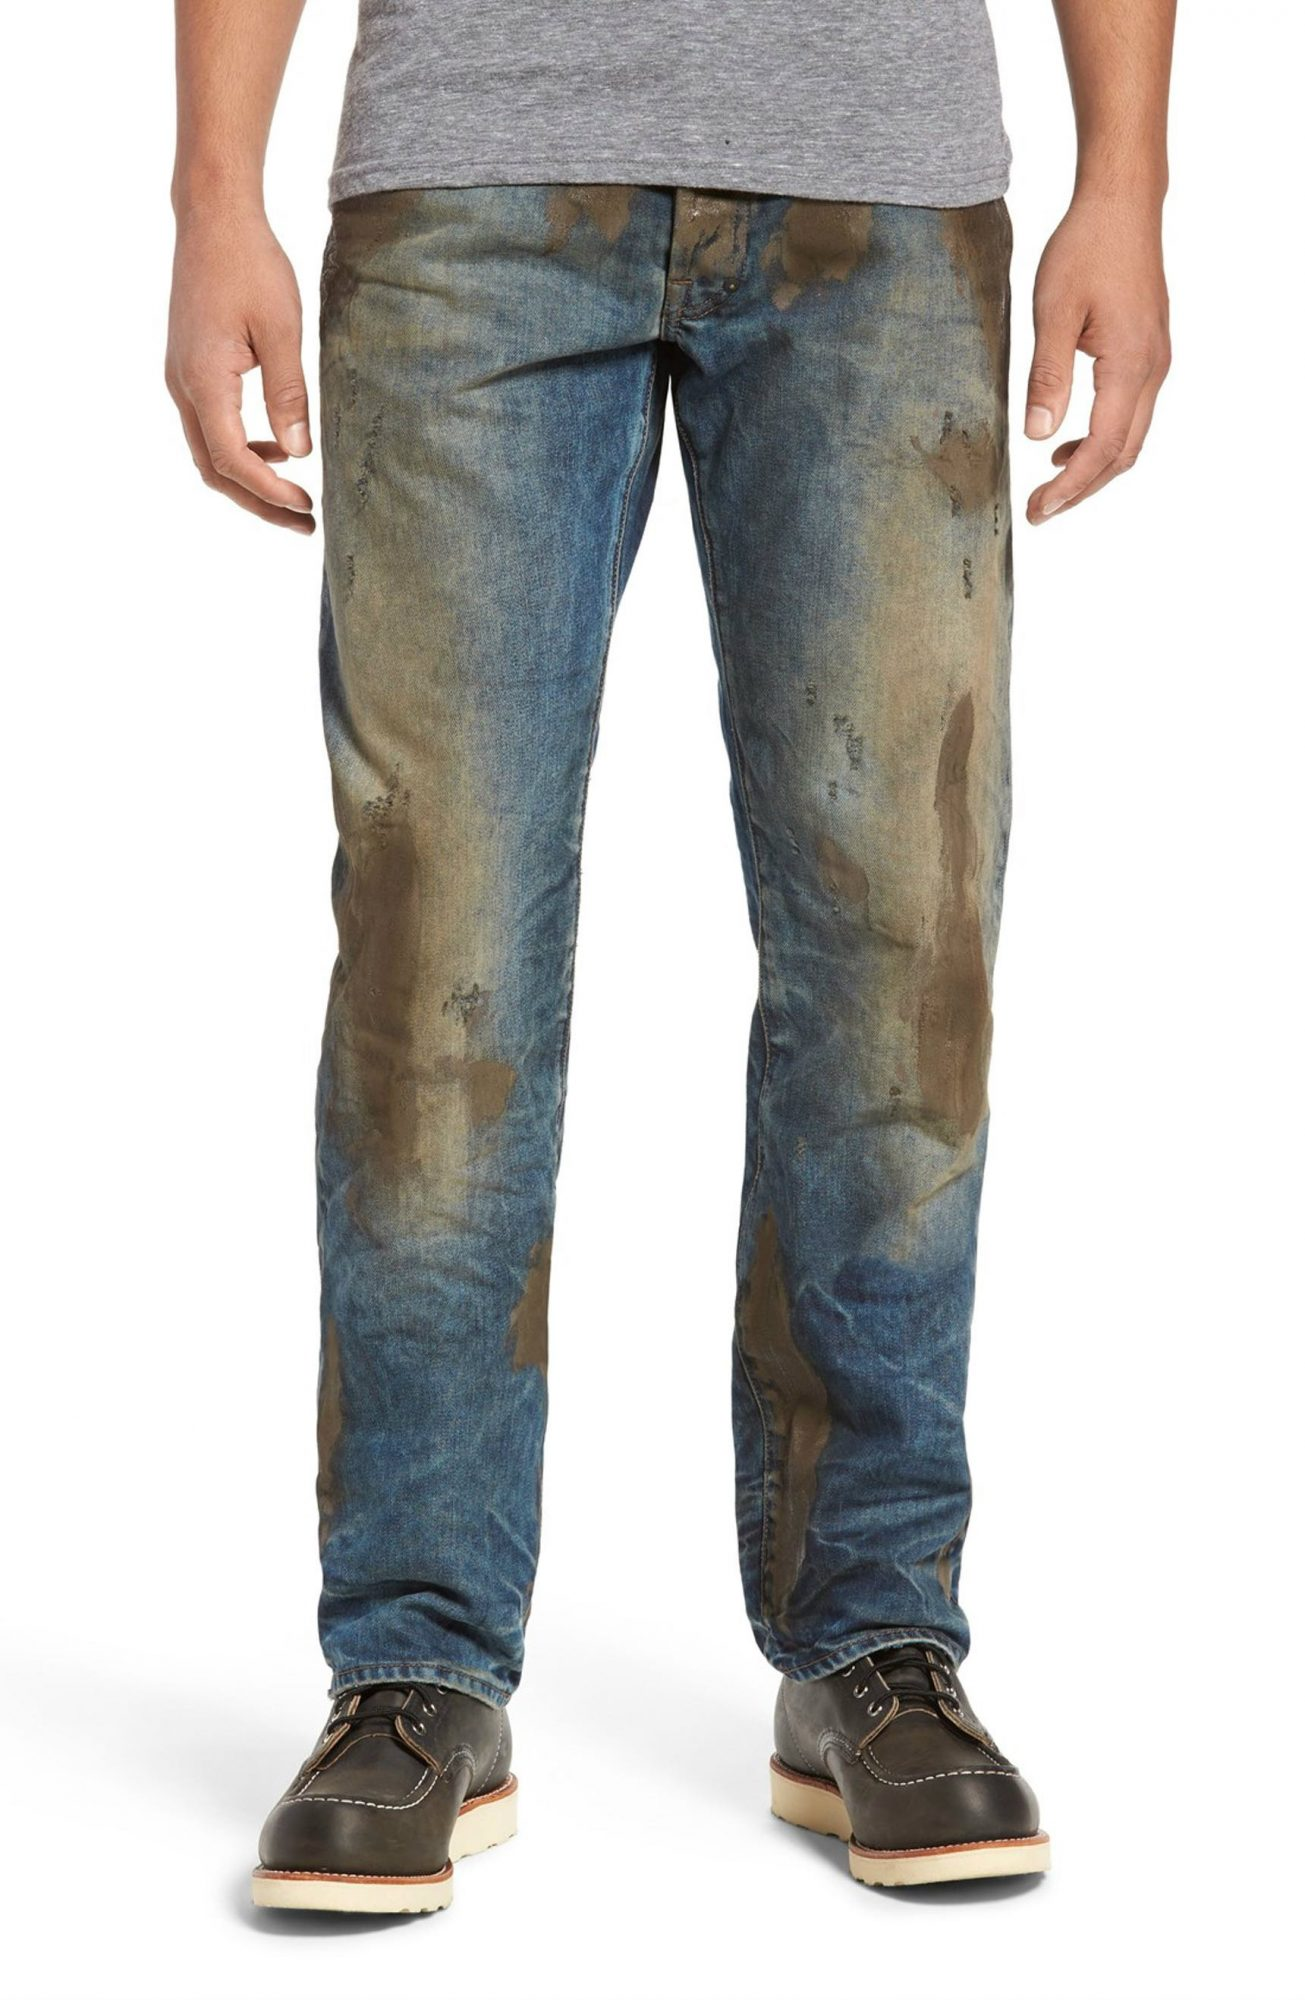 These $425 Jeans Come Pre-Covered in Mud from Nordstrom